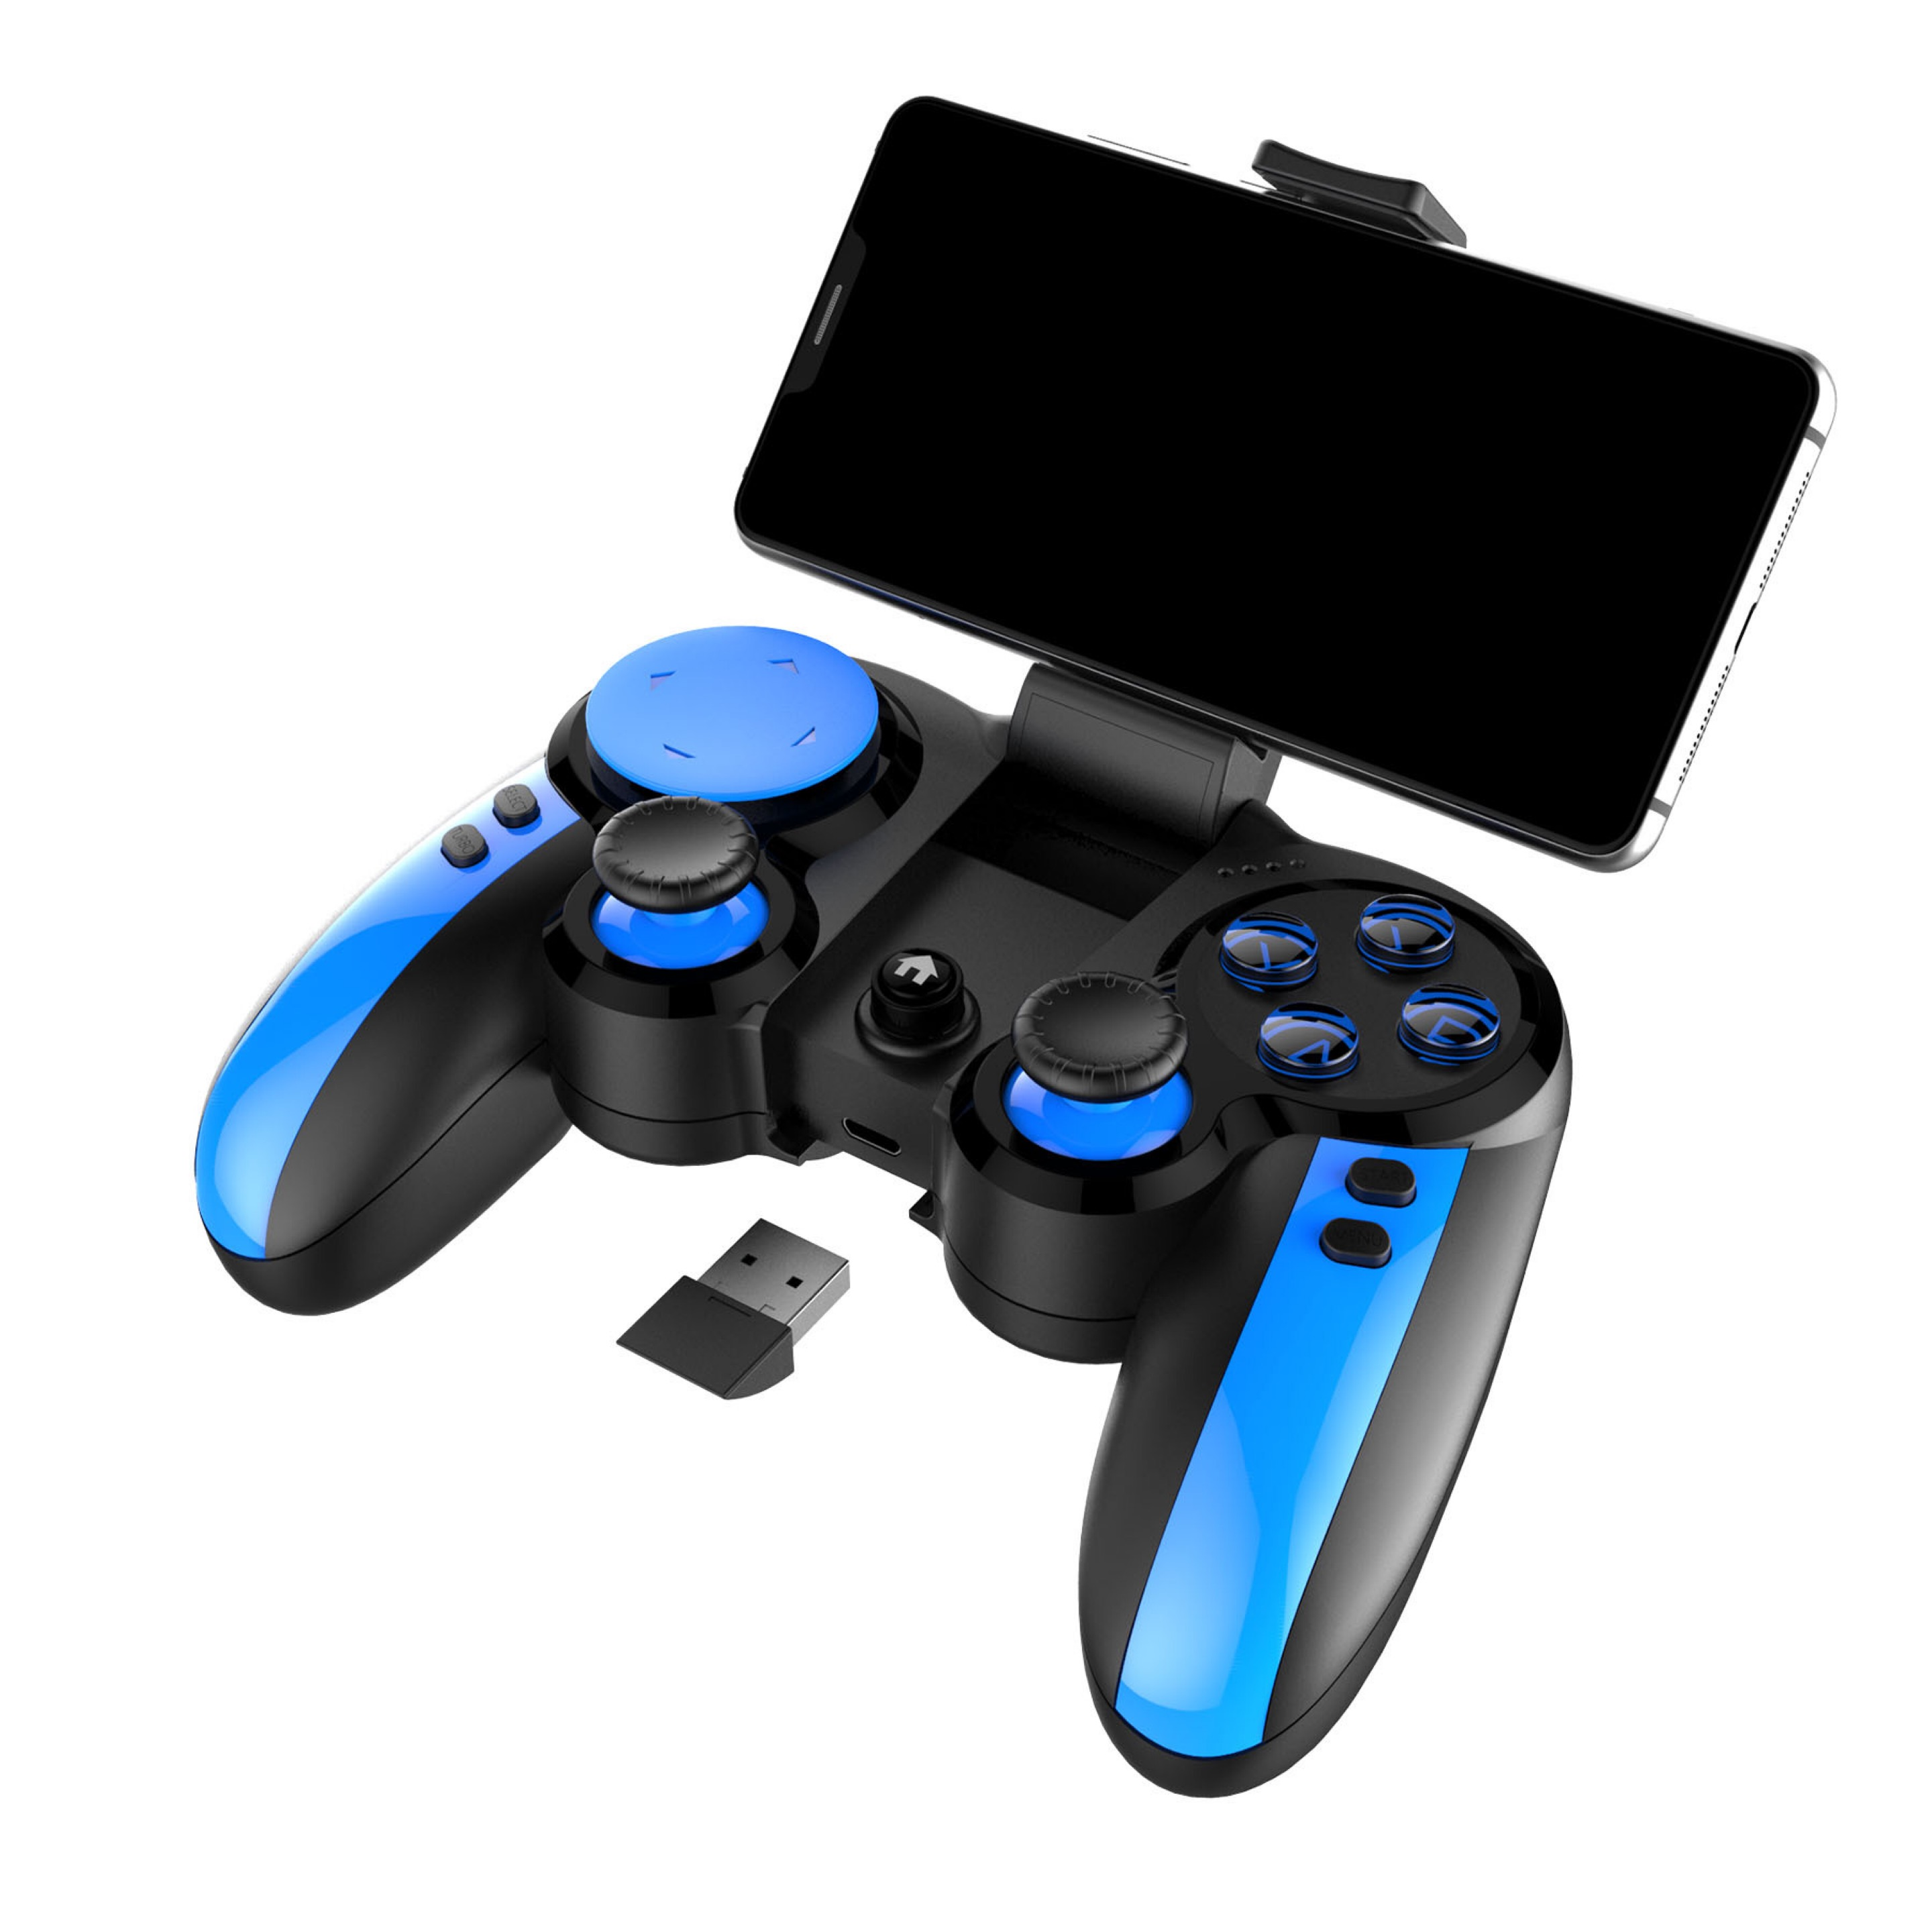 PG-9090 Smurfs 2.4G ไร้สาย Bluetooth Playerunknown's - Battlegrounds เกม IOS Android Instant Gamepad